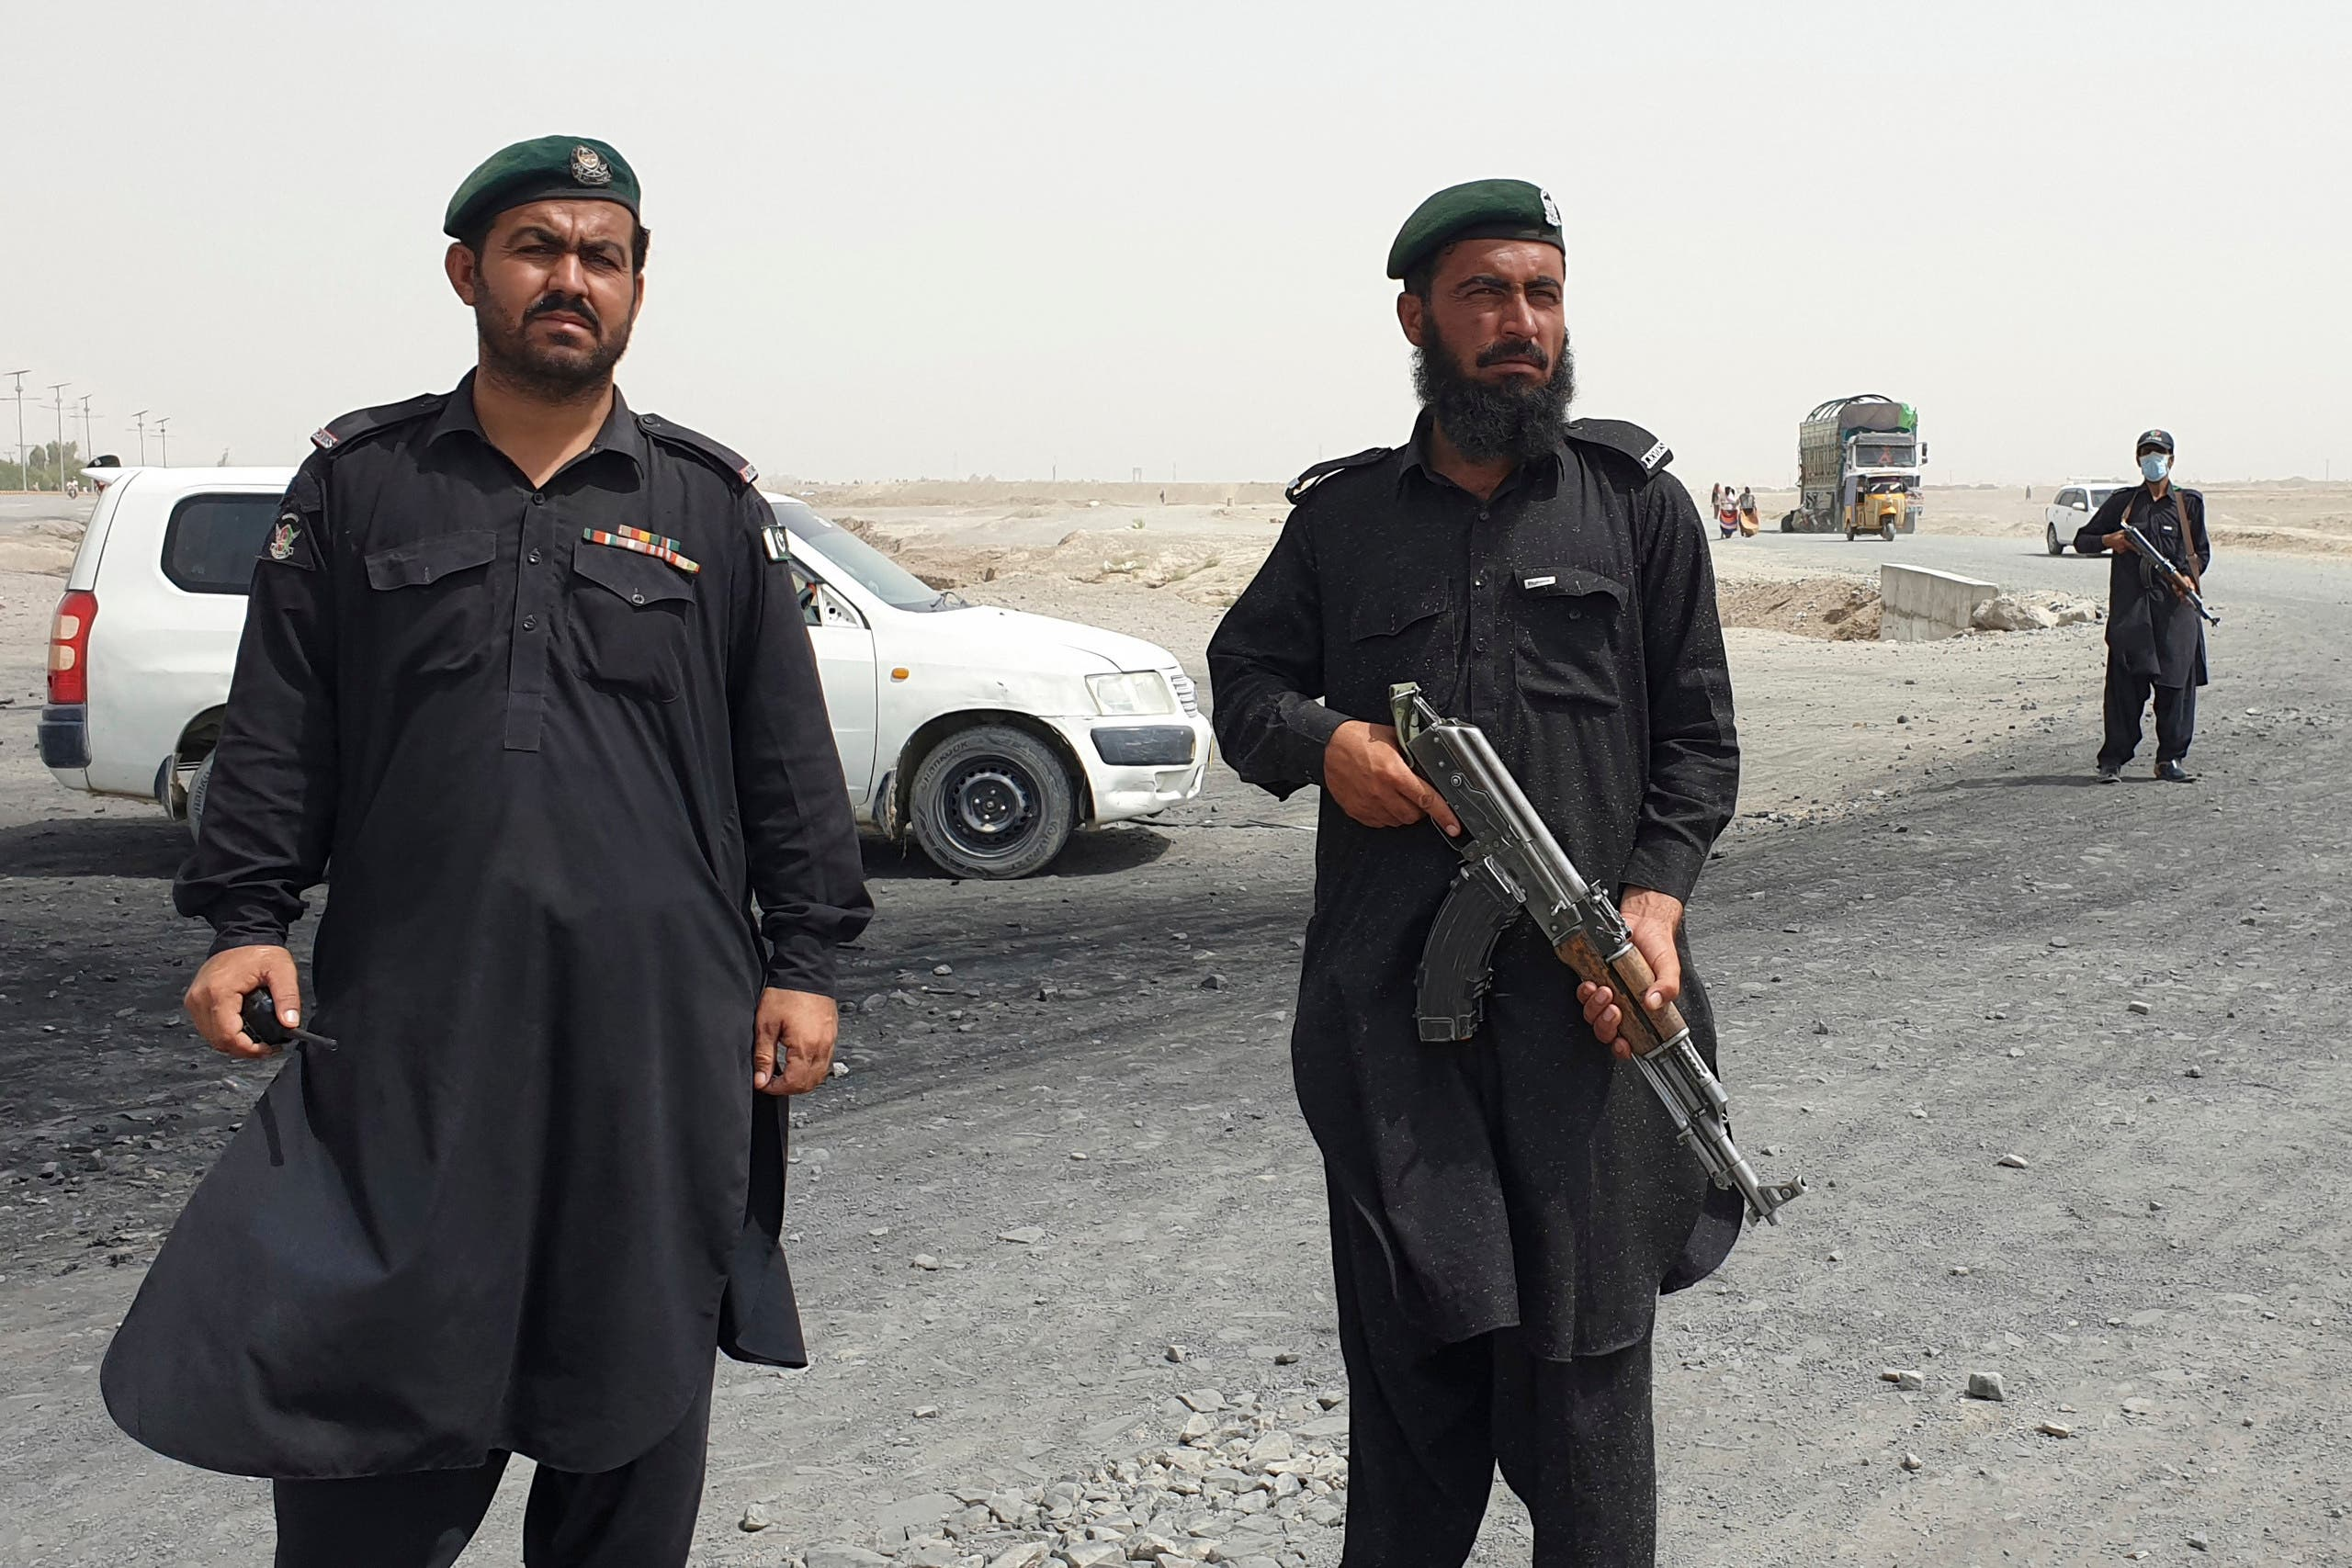 Afghan border guards in Spin Boldak near the border with Pakistan, where fighting with the Taliban broke out